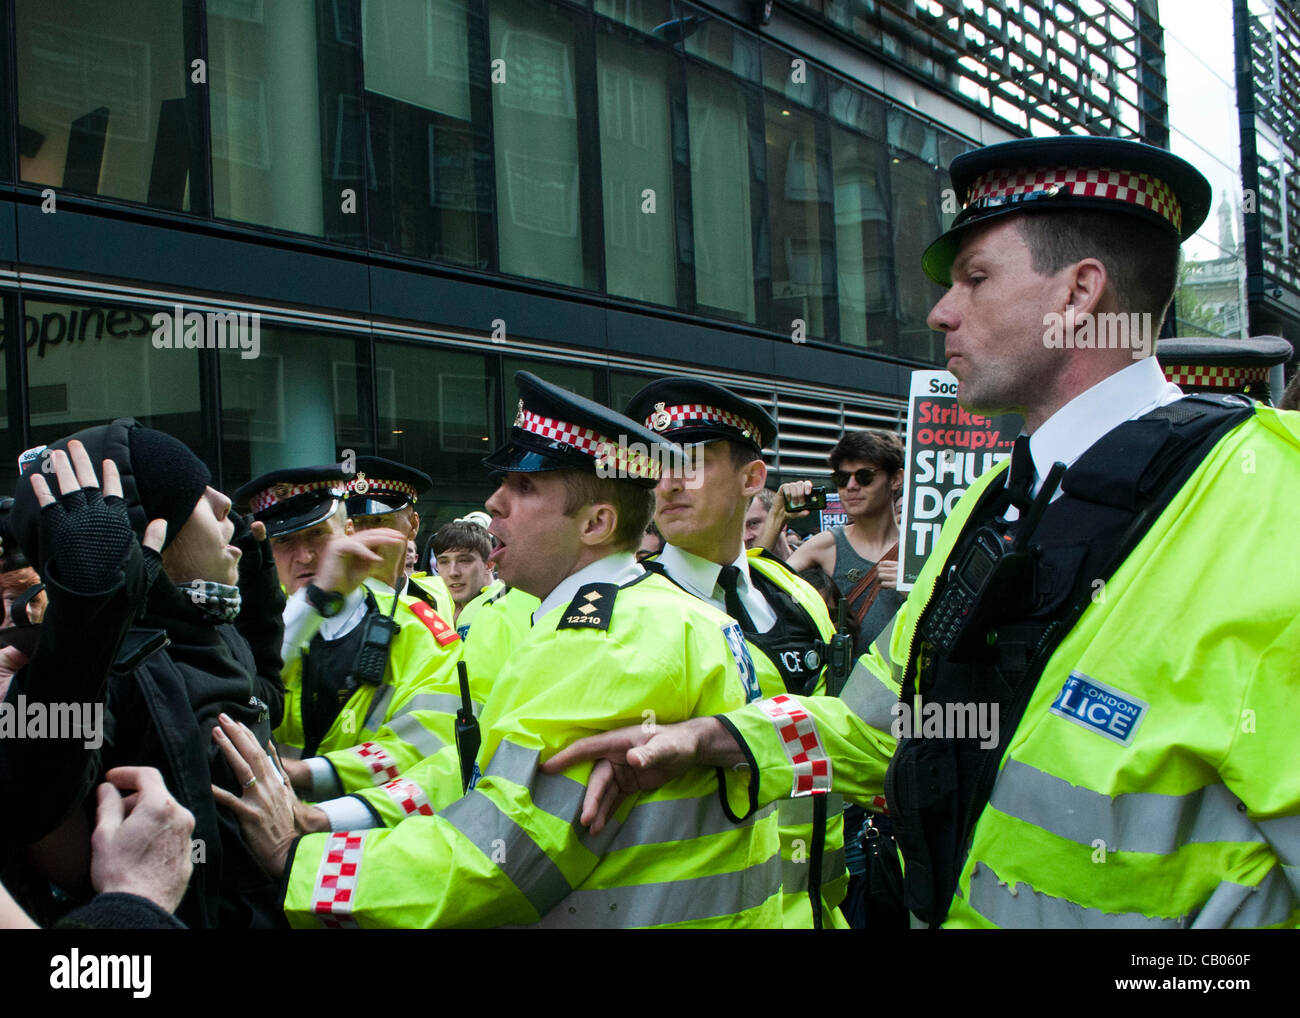 London, UK. 12/05/12. Police and Occupy protesters clash during a roving demonstration in the City of London area. - Stock Image